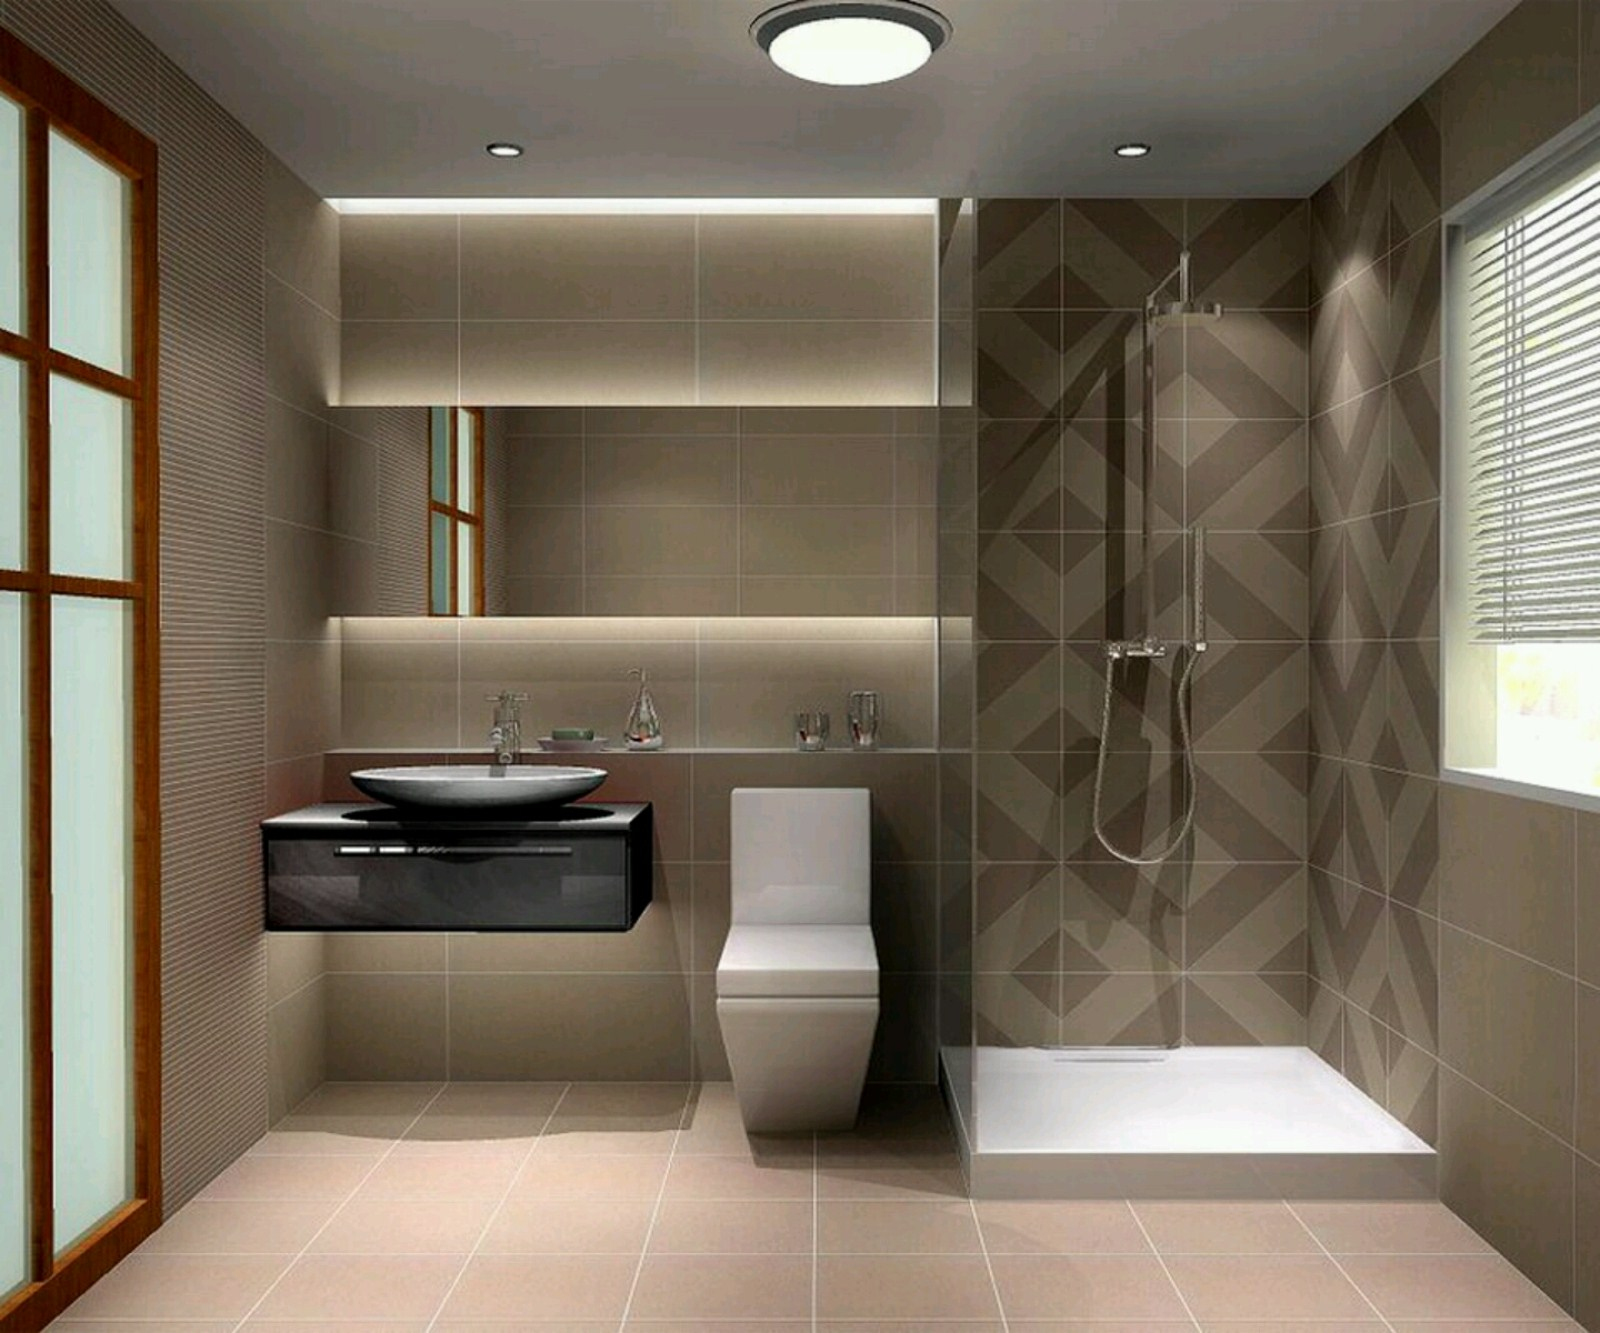 Bathroom Lighting Ideas With Brown Color On Wall Tile Simple Shower Area White Toilet And Unique